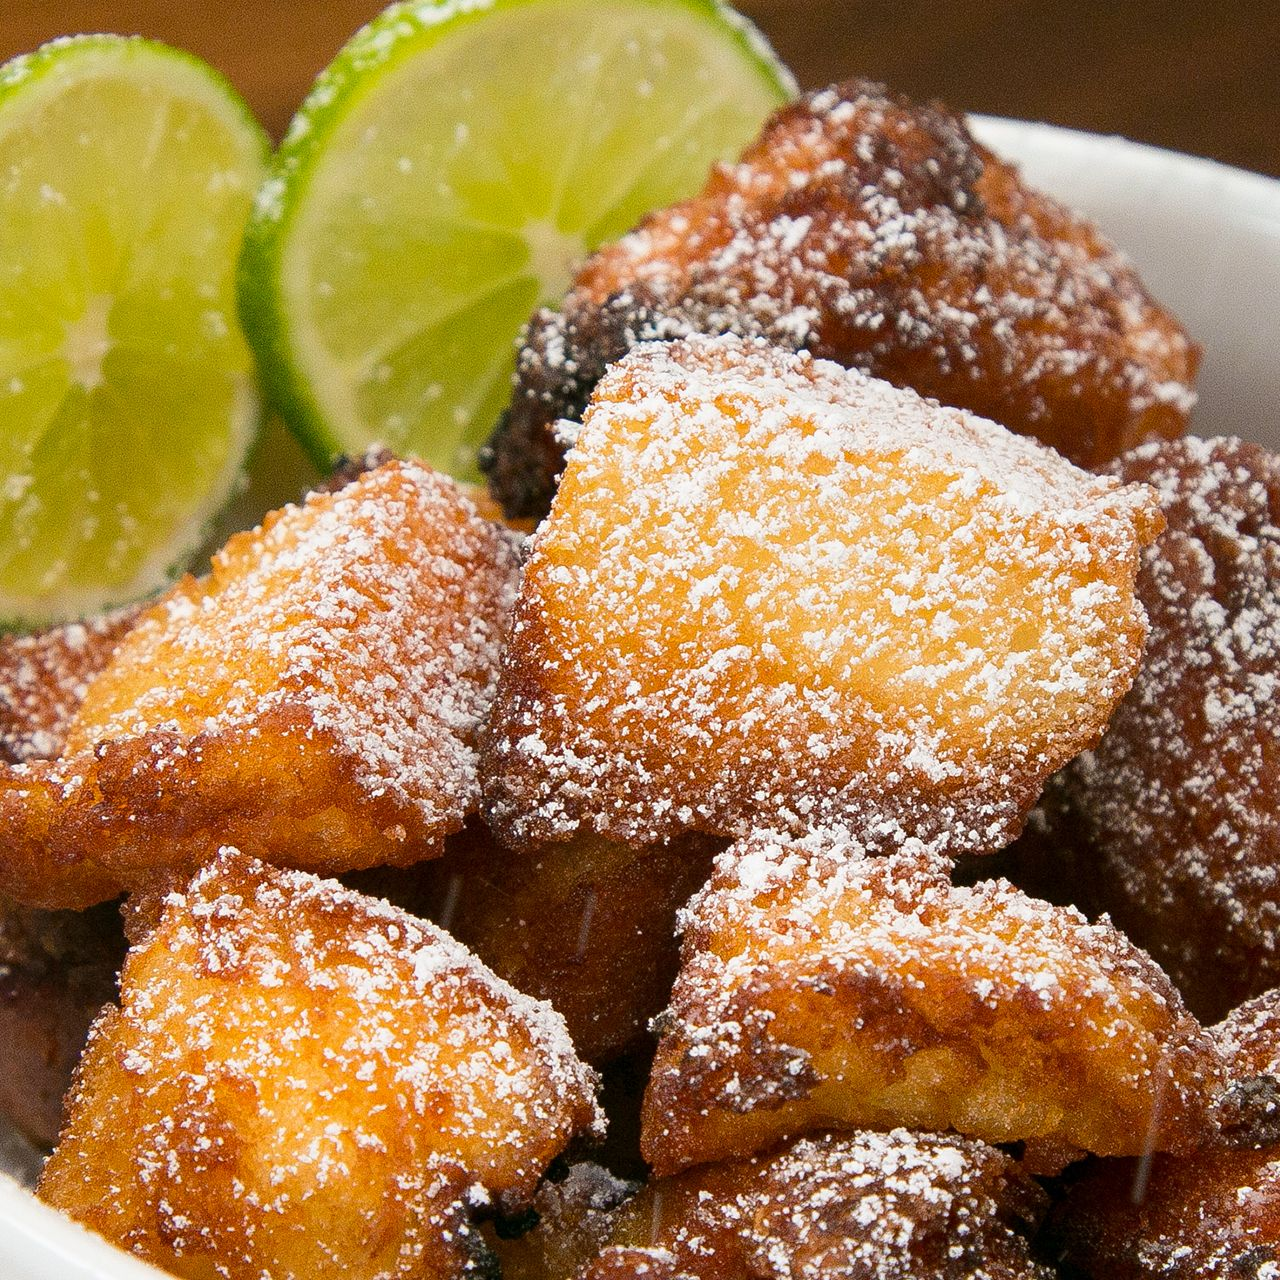 Get The Recipe: Fried Tequila Shots